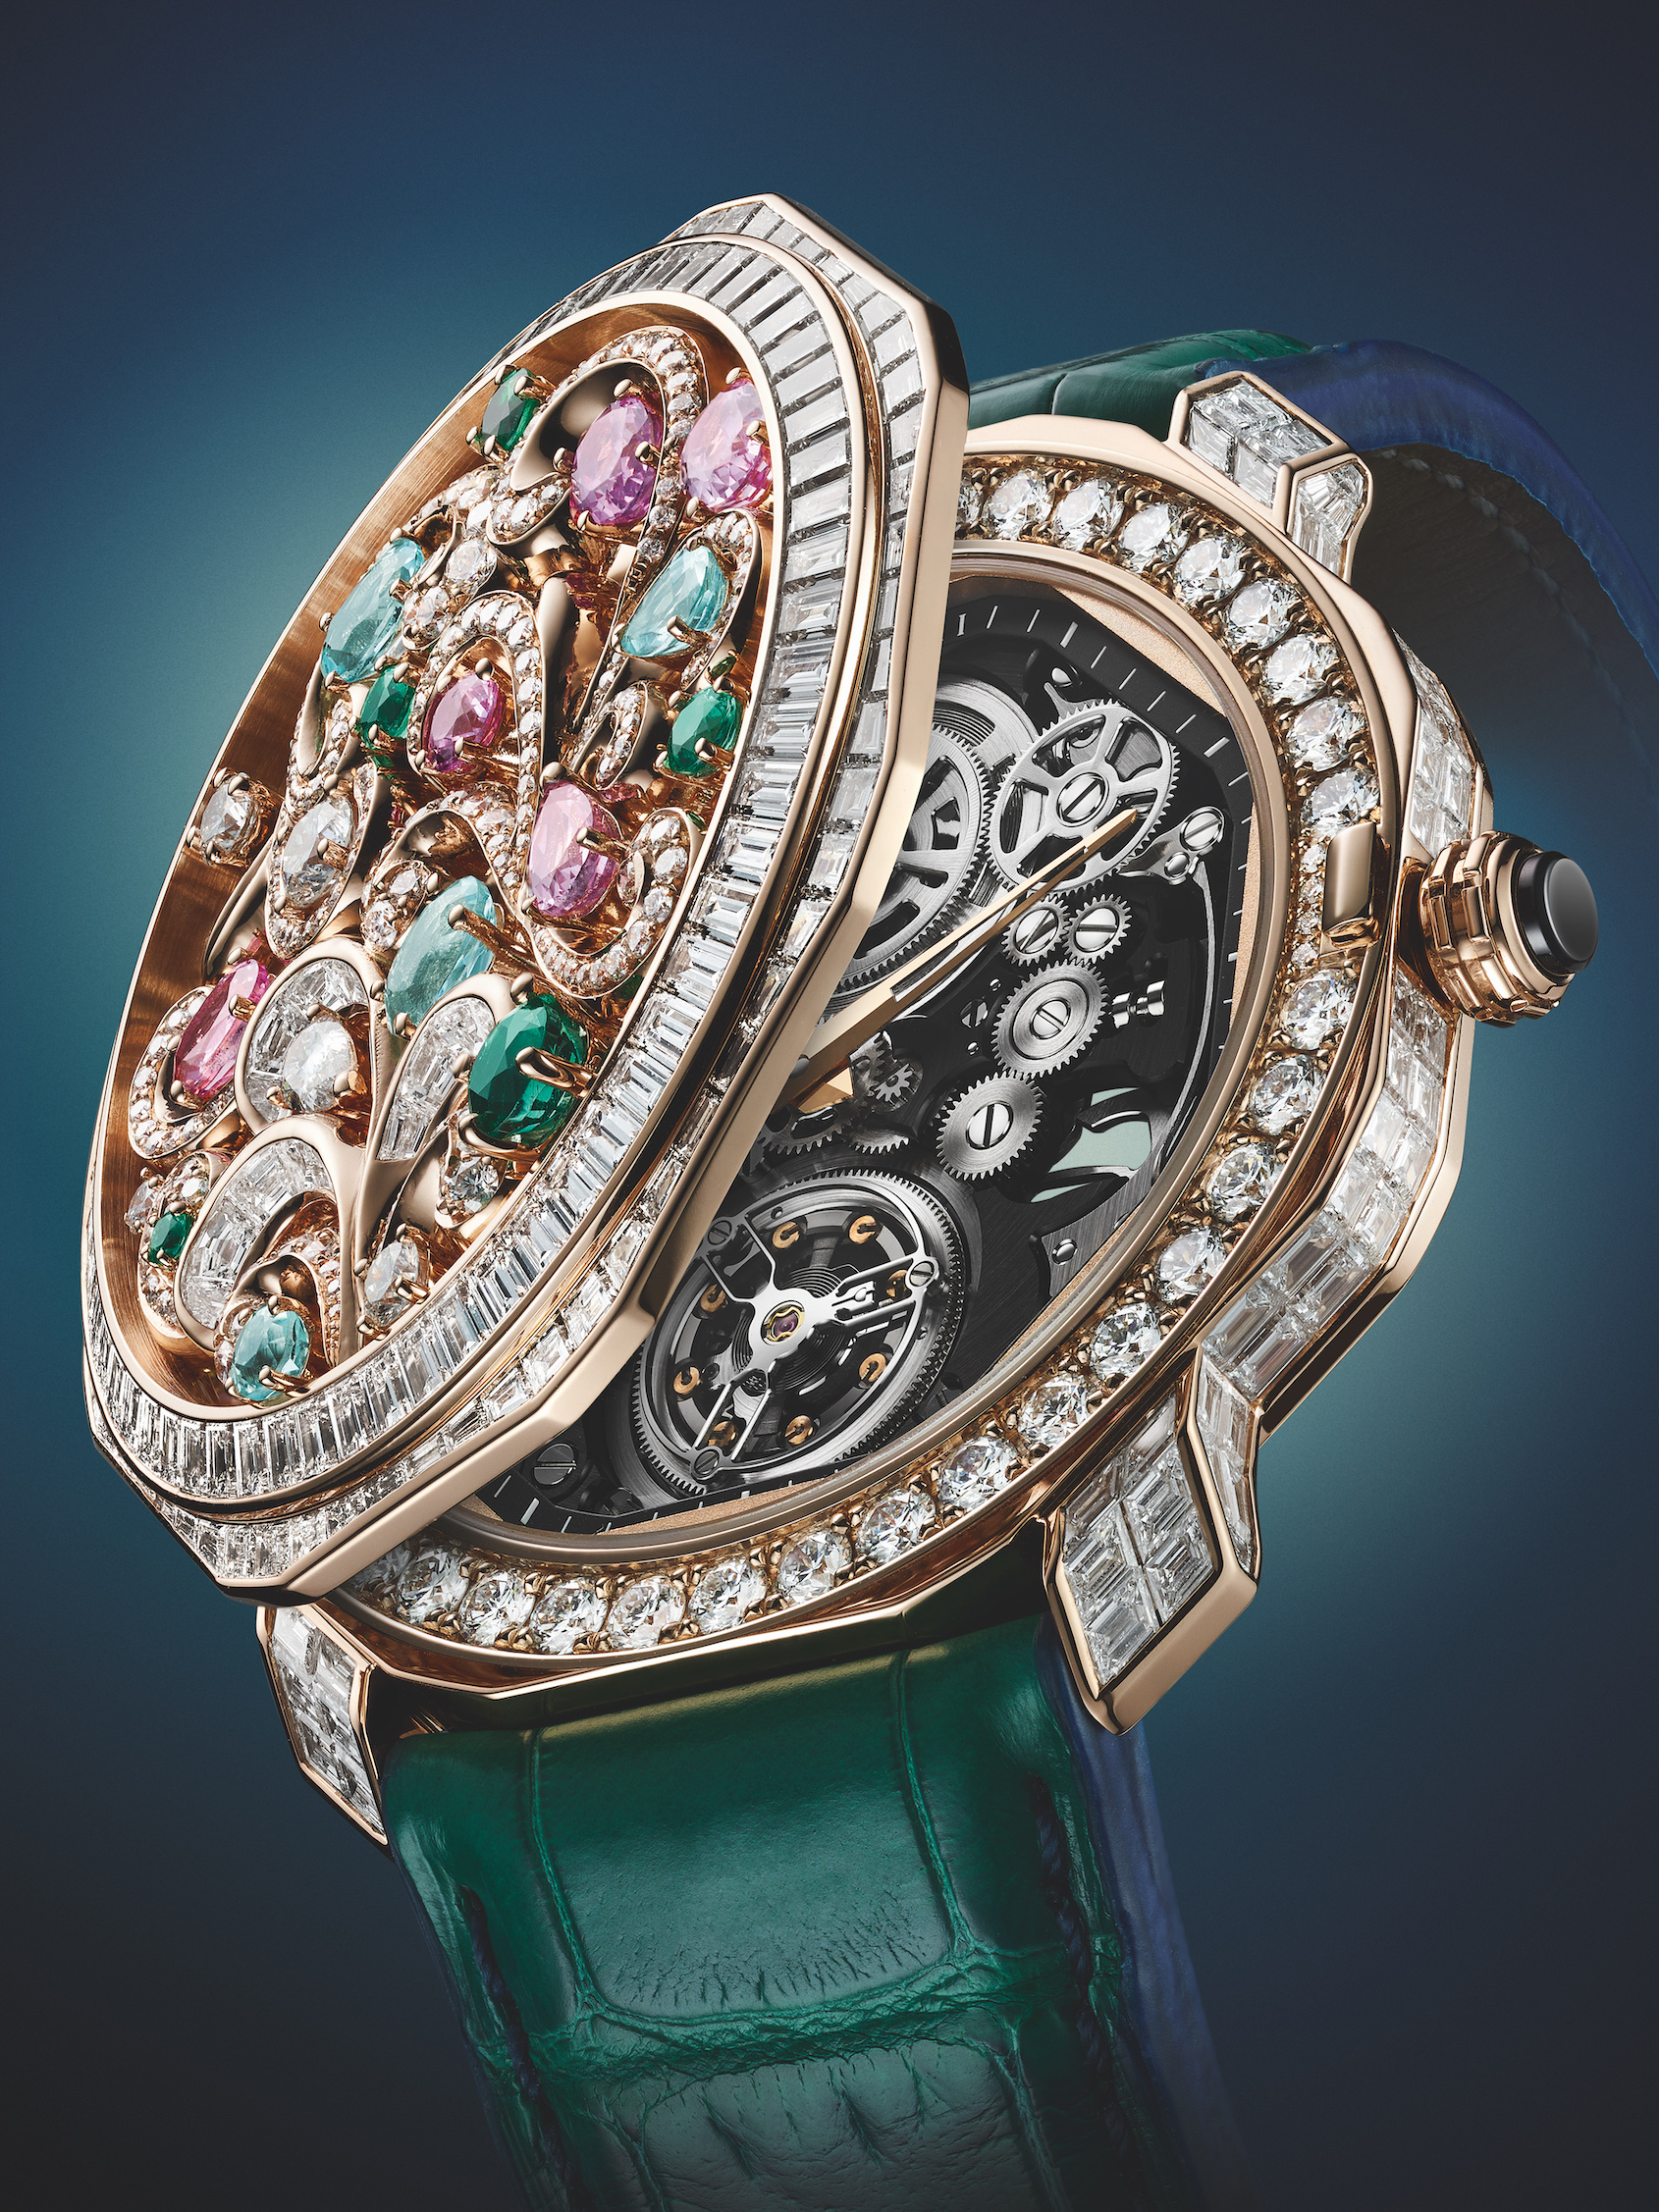 """INTRODUCING: The Bulgari High-End Watch 2020 Novelties show the """"jeweller of time"""" in absolutely top form"""